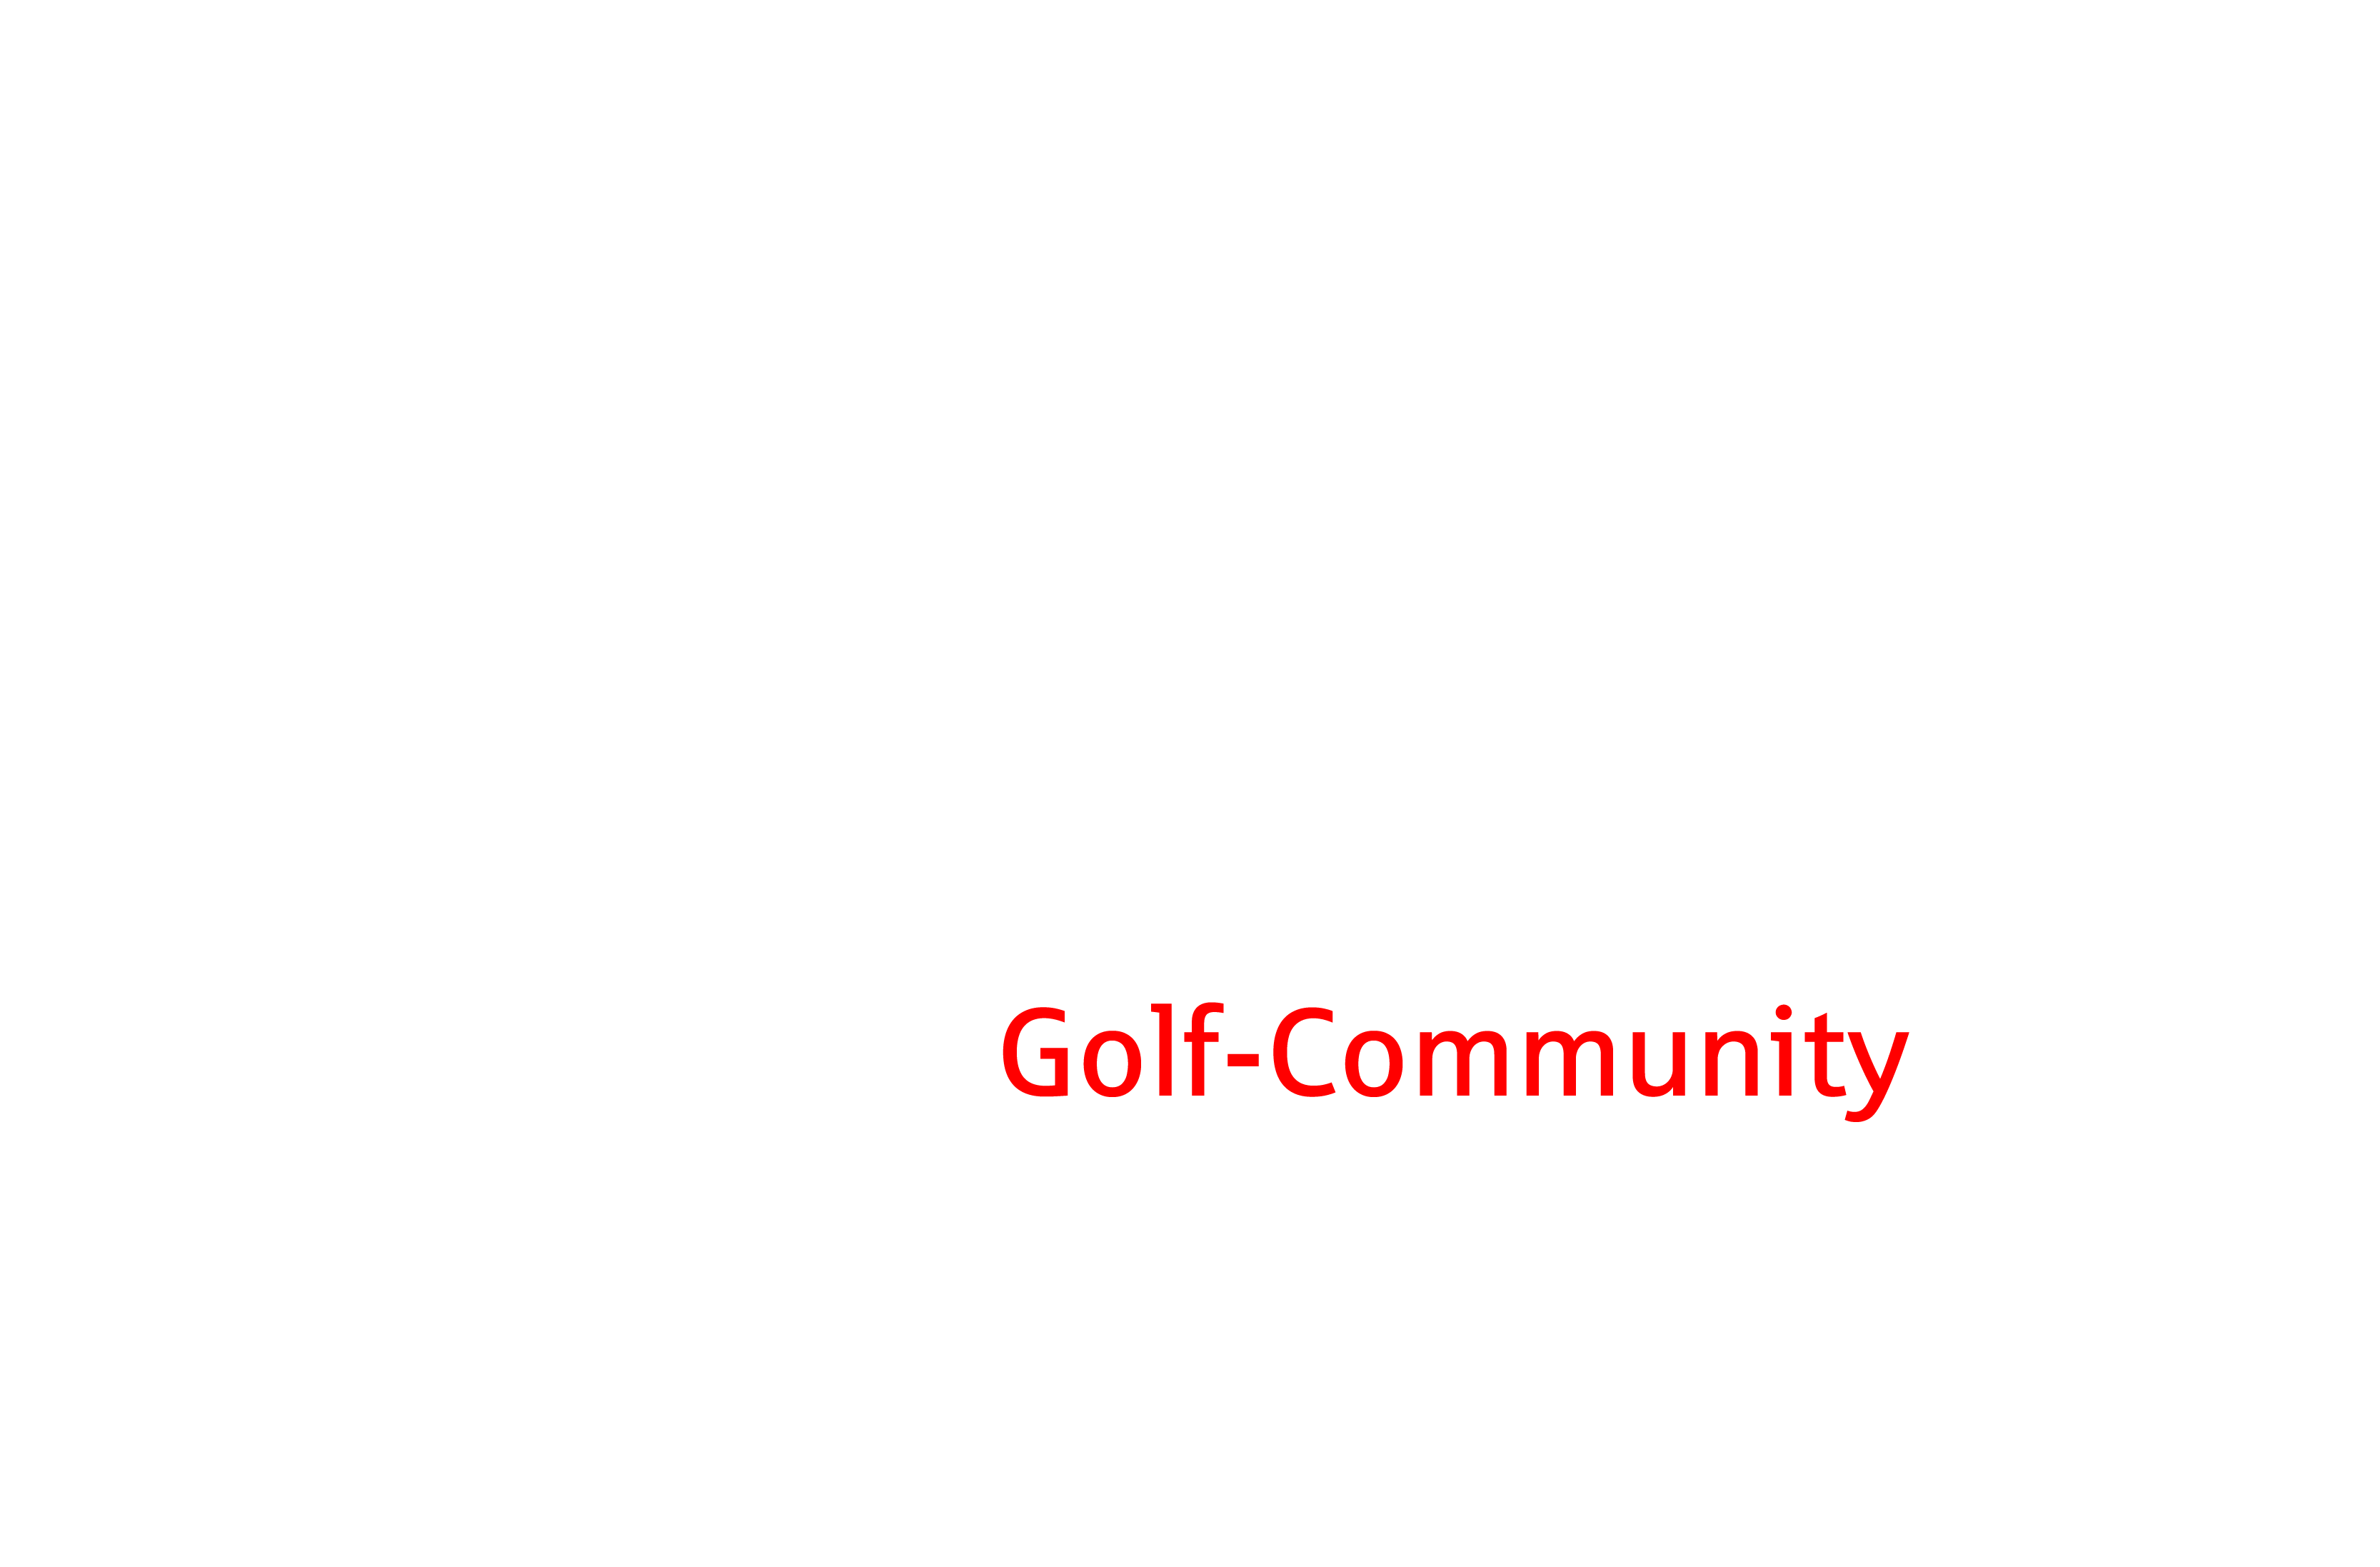 Platinum Golf-Community -